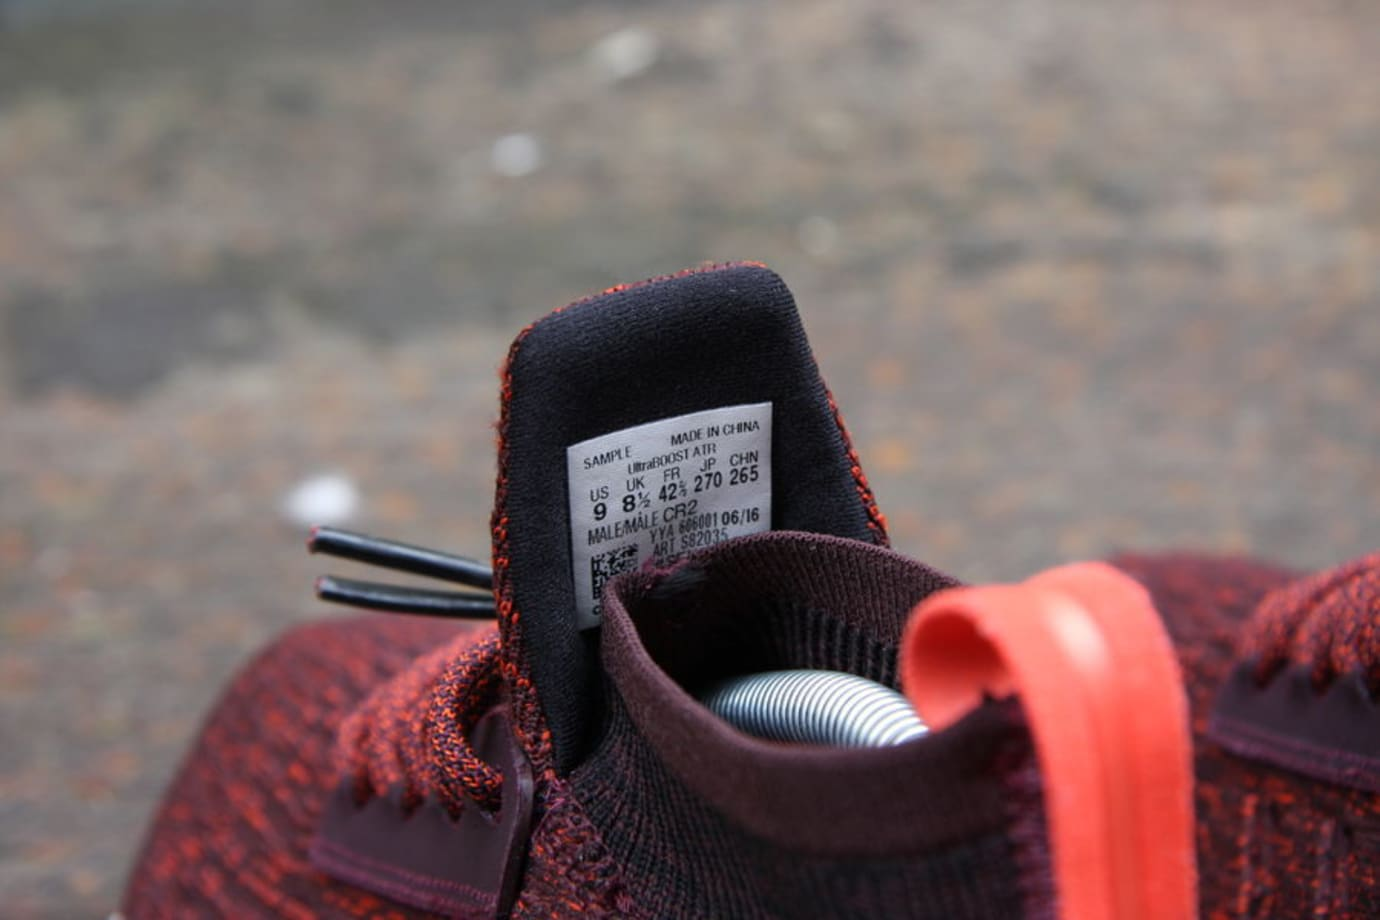 63186fff124 Adidas Ultra Boost ATR Red Release Date S82035 Tag